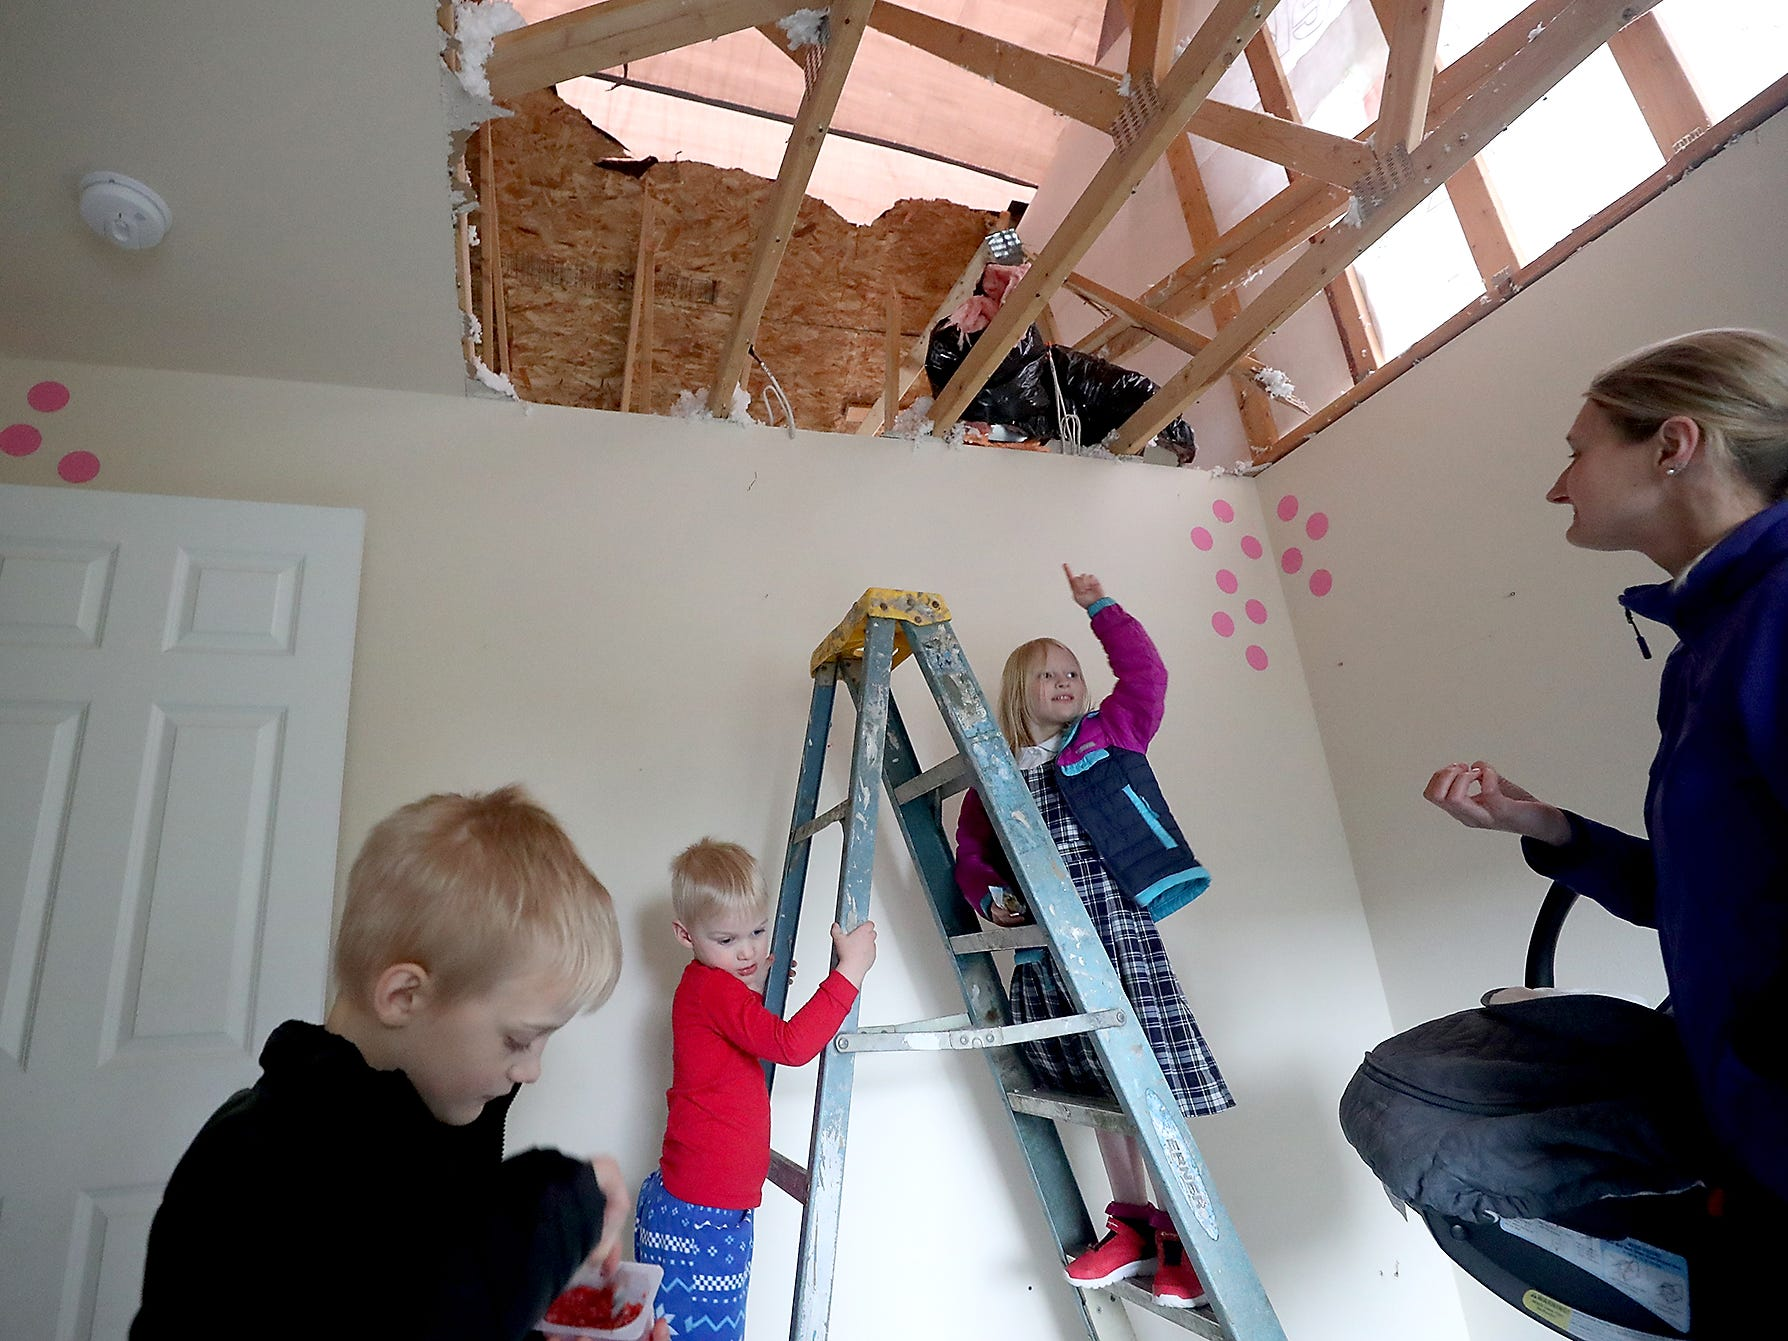 Julia Roscoe, 5, points to the missing ceiling in her bedroom while she and brother Benjamin, 3, stand on the bottom rungs of a ladder as they and their mother Liz (right) and brother Matthew, 7 (left) take a look at the repairs being done to their tornado damaged home on Kelby Circle in Port Orchard on Monday, March 11, 2019.